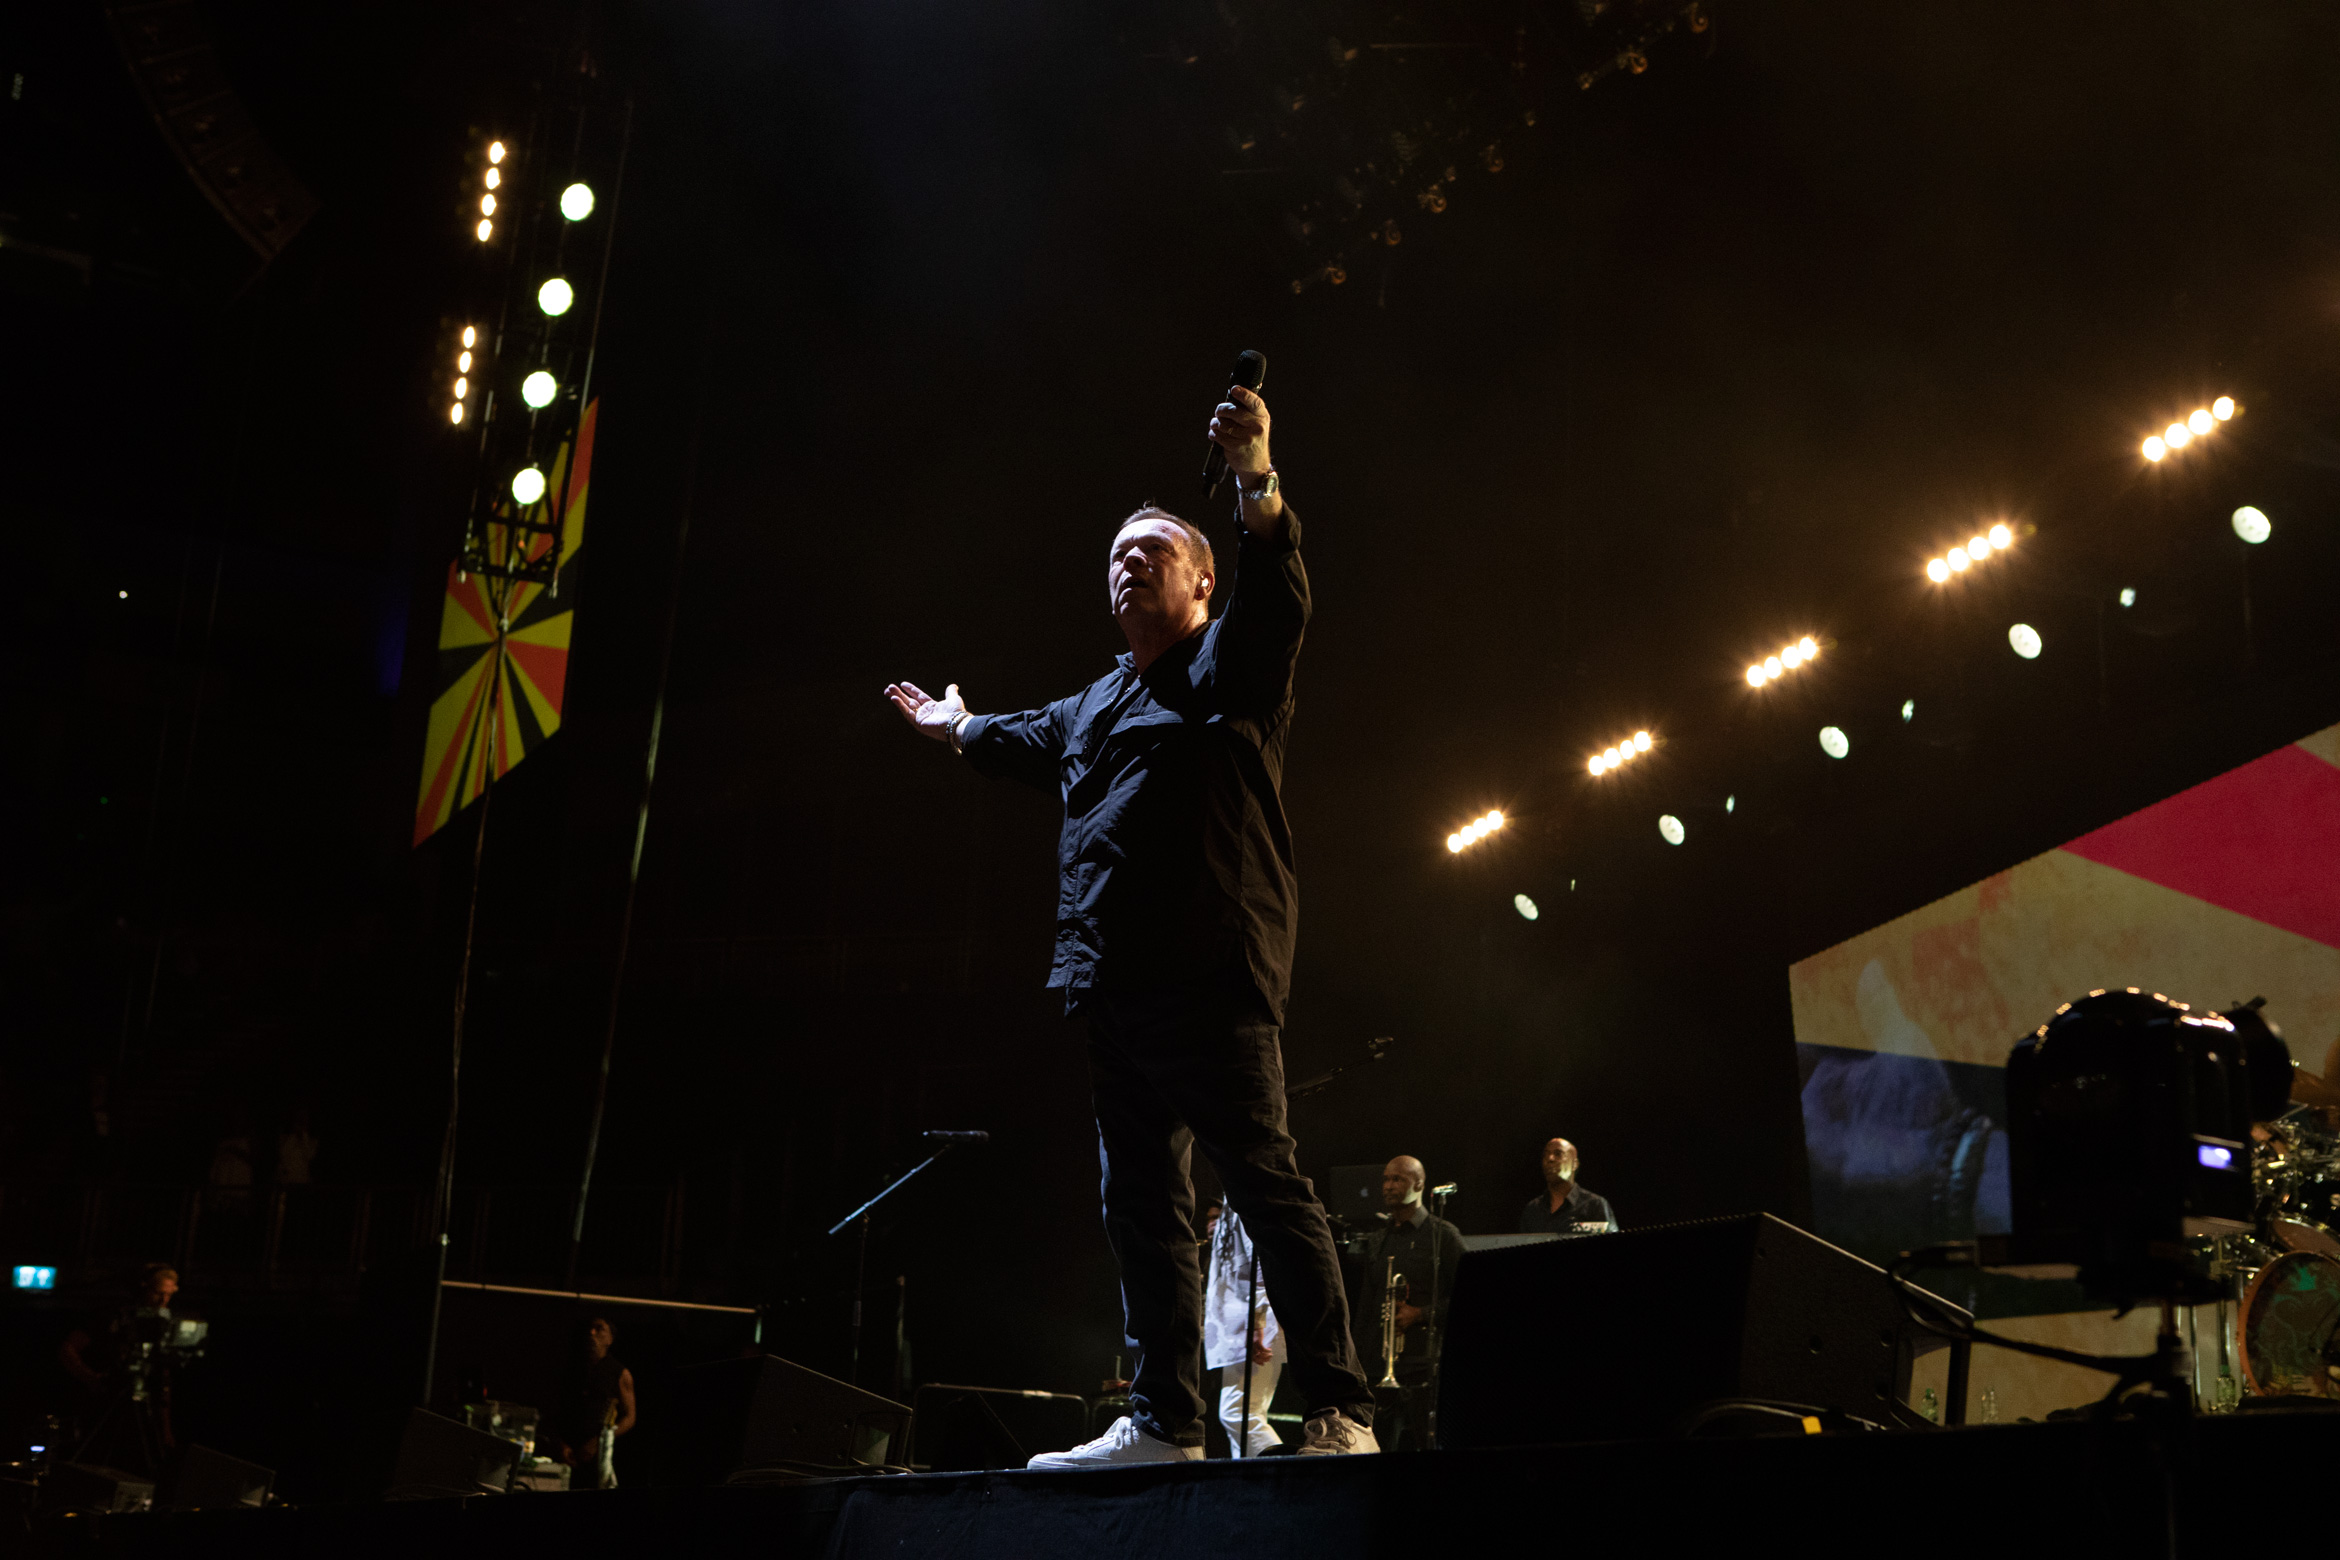 ub40_O2_arena_london_2019_james_watkins_28